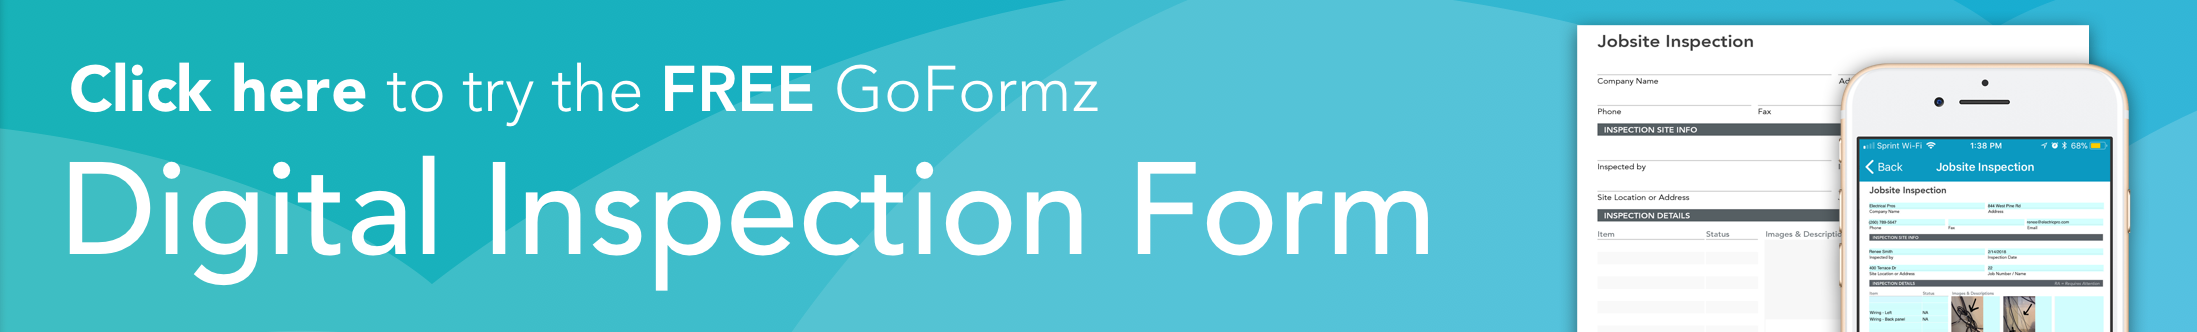 Click here to try the free GoFormz digital inspection form